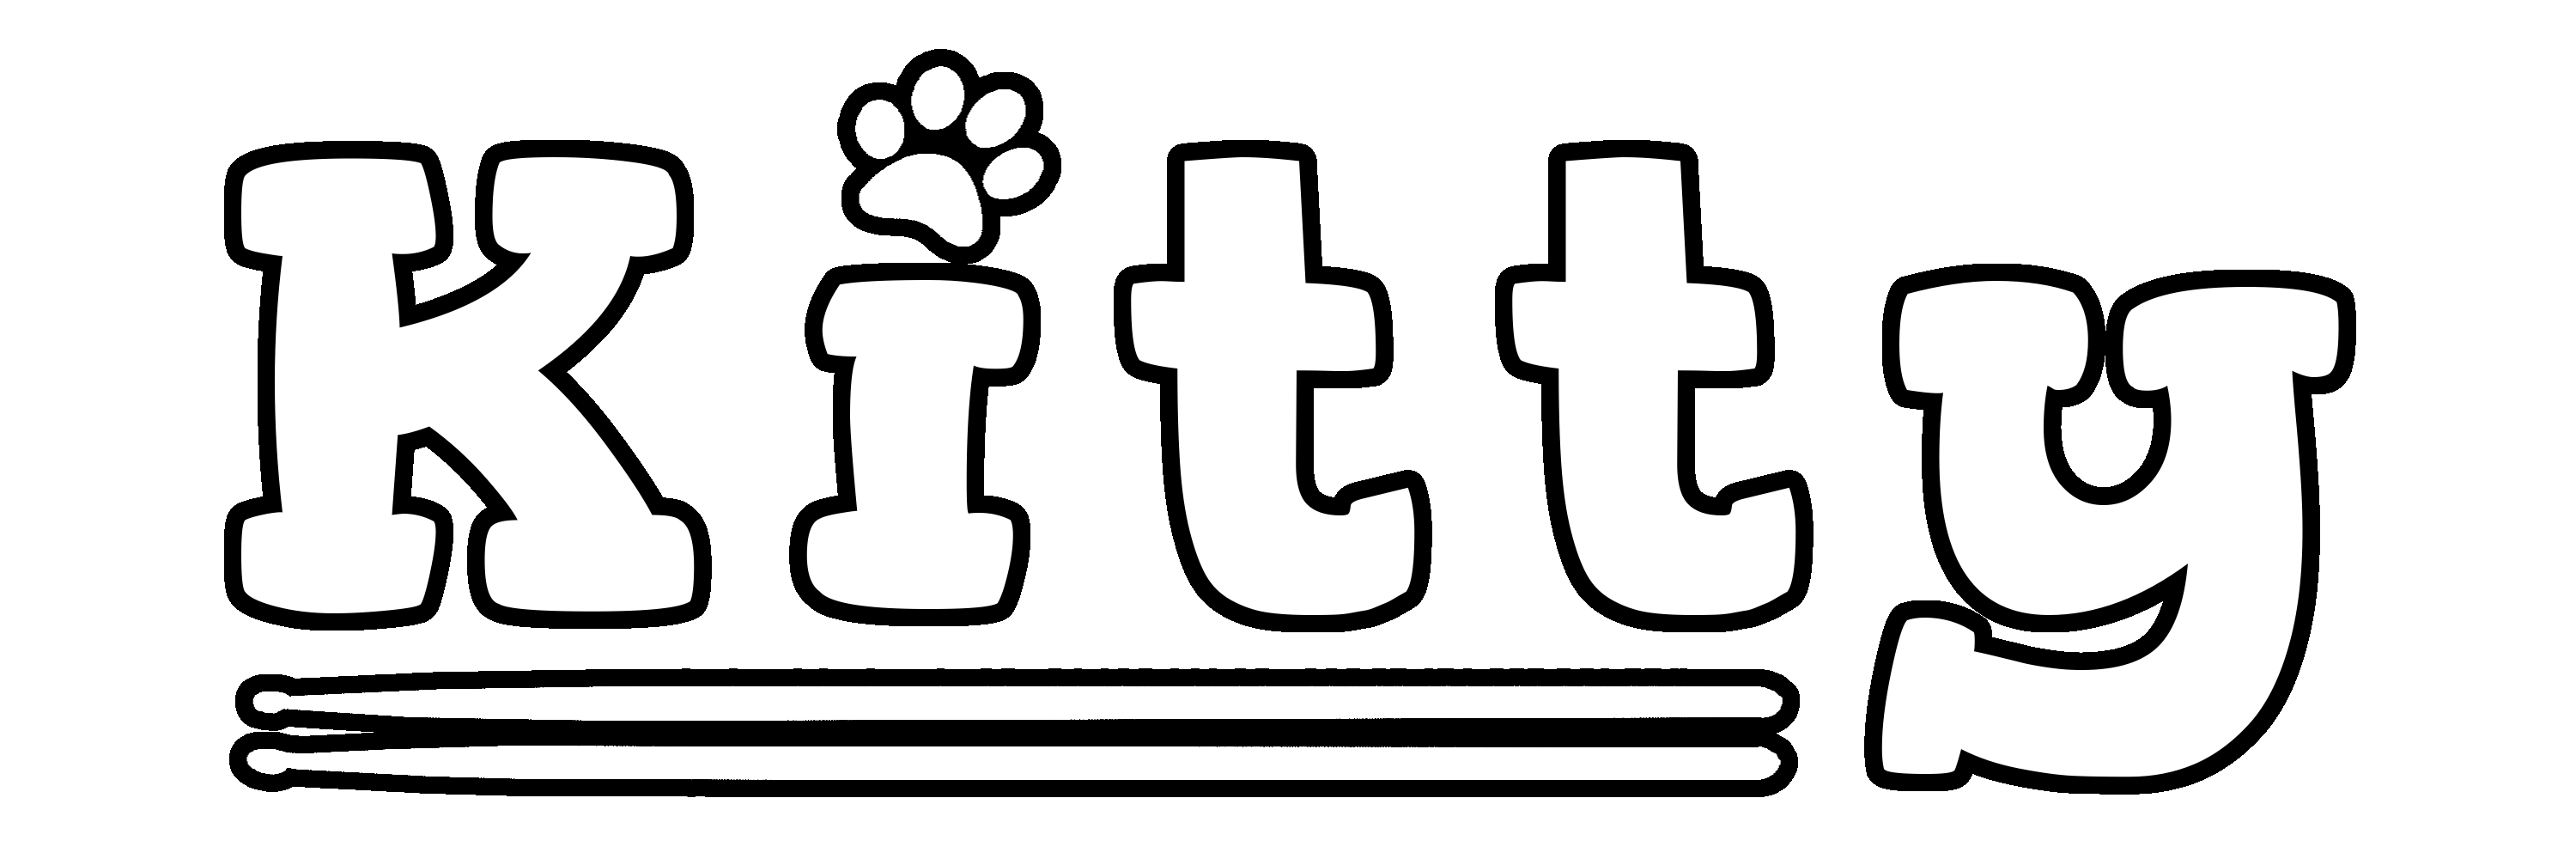 kits:kitty-logo.png